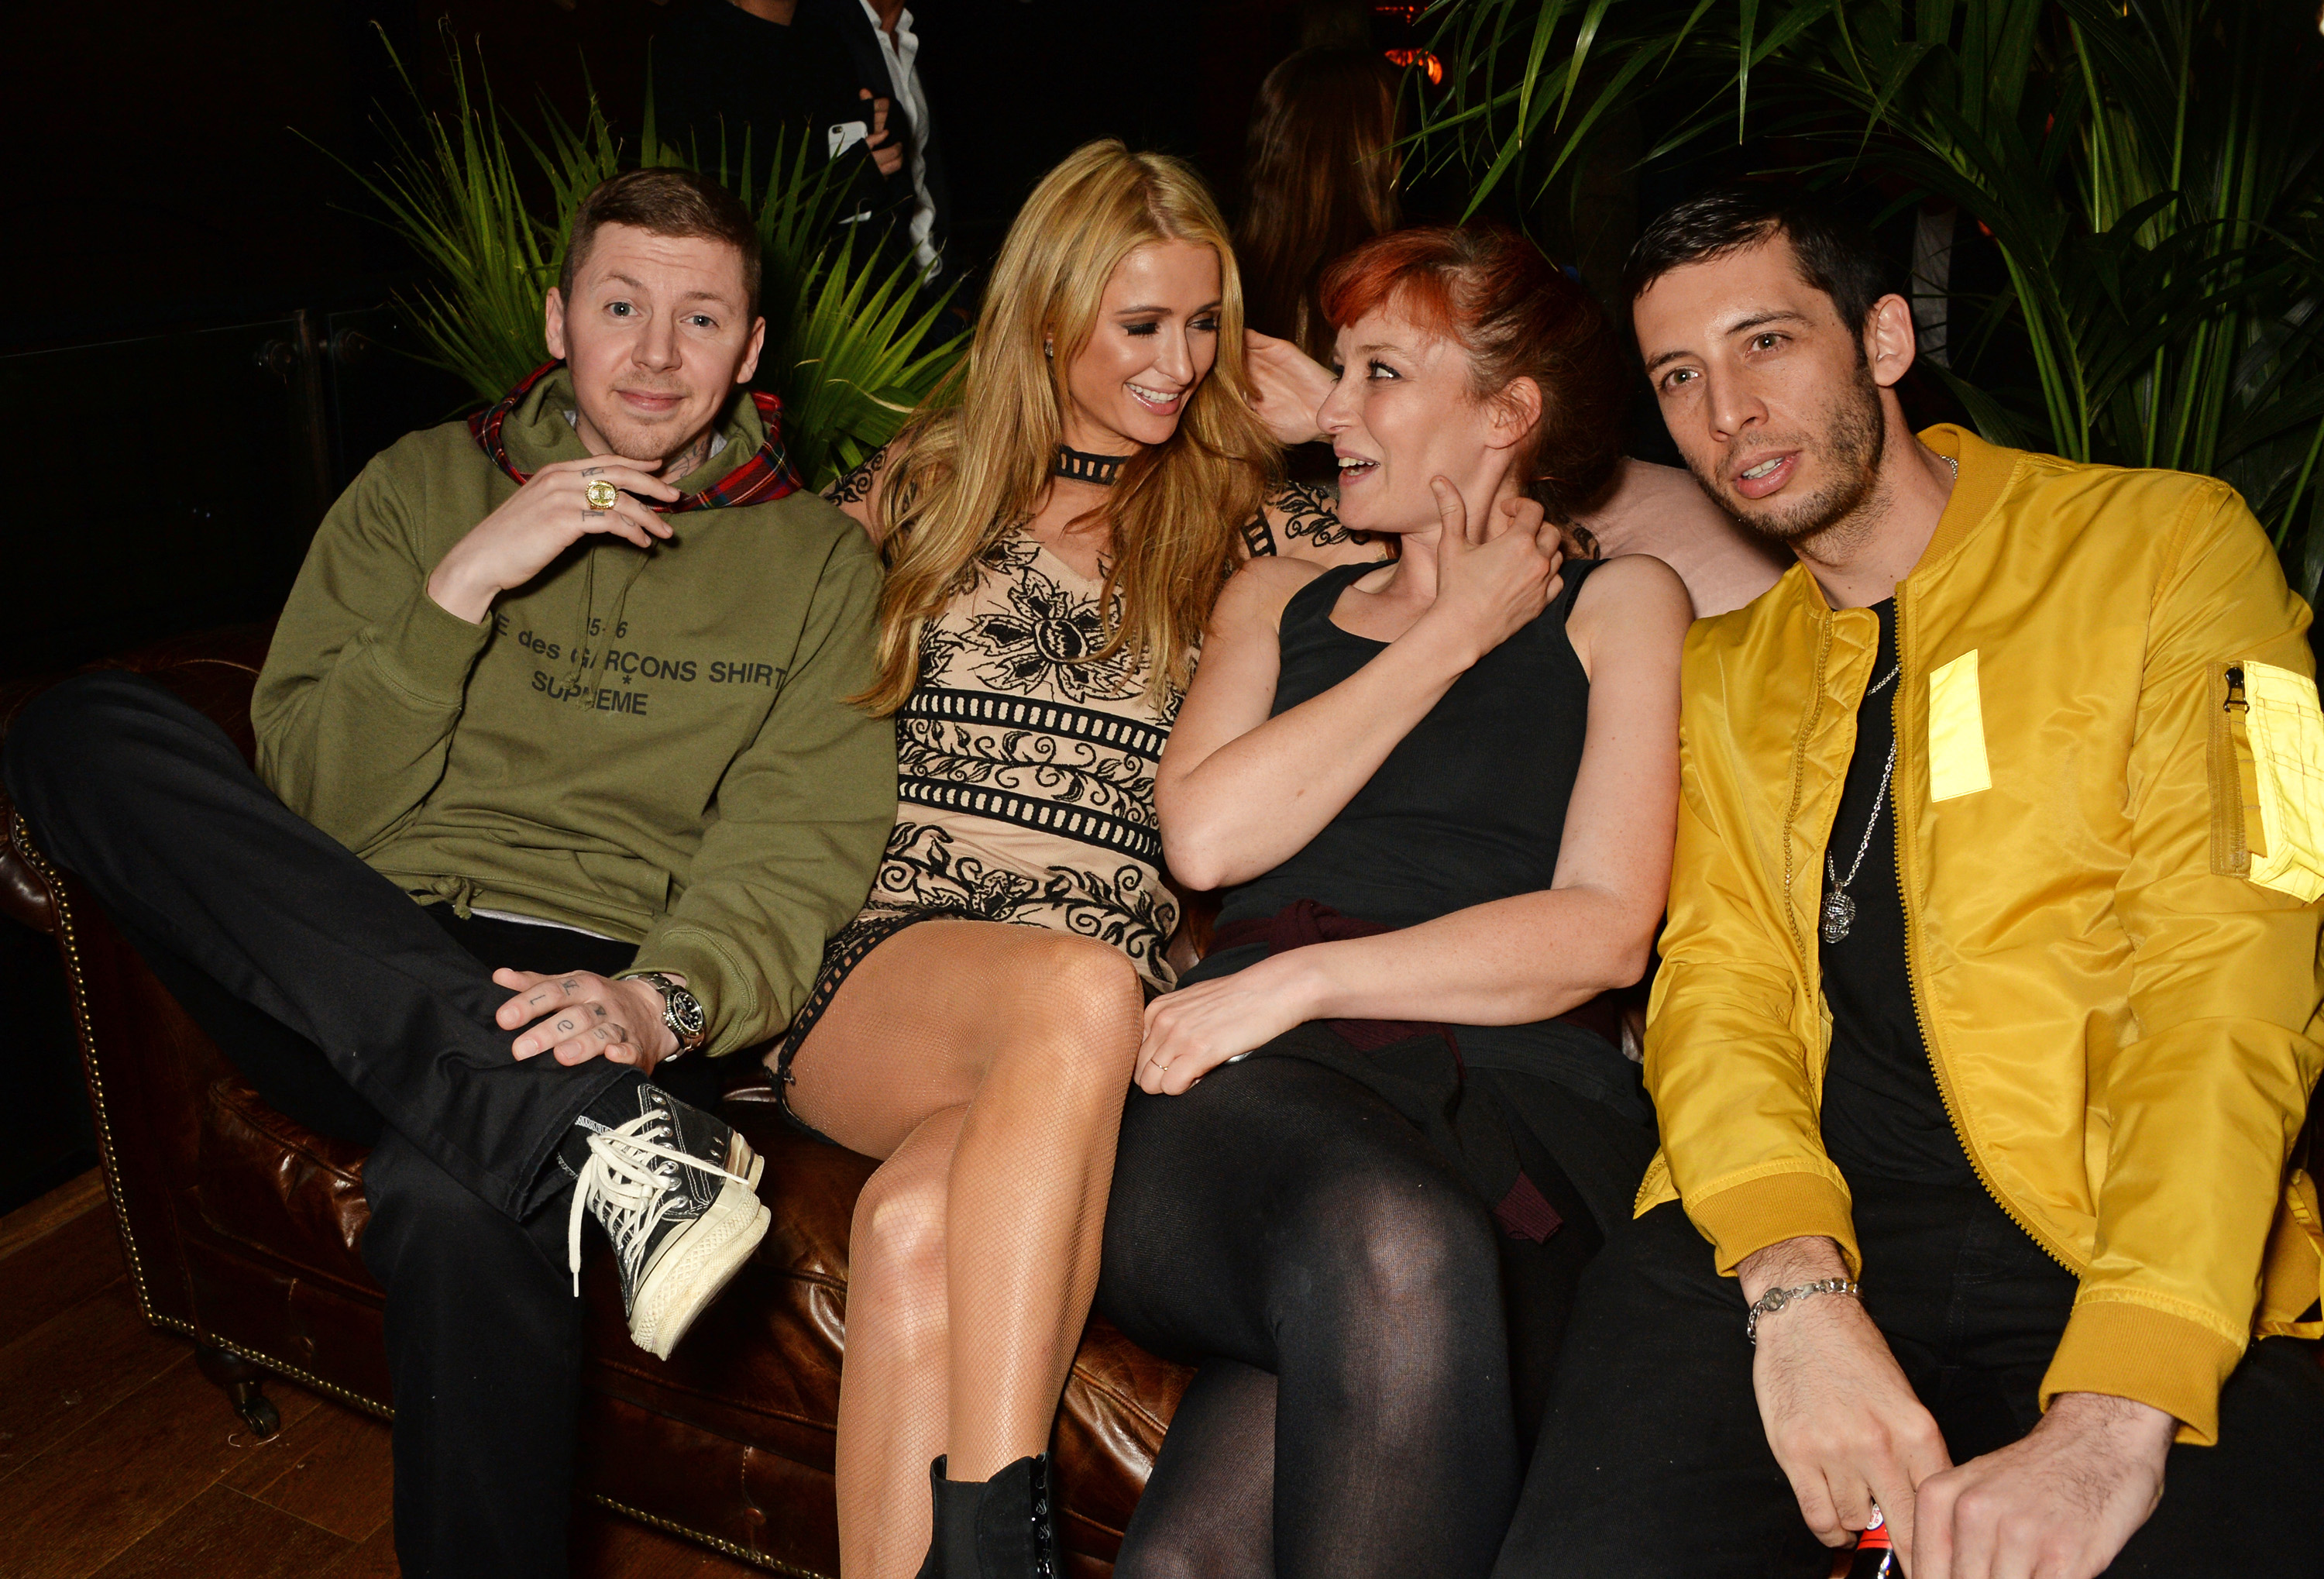 Professor Green hilariously shoots down dating rumours – requests date with Jessica Alba